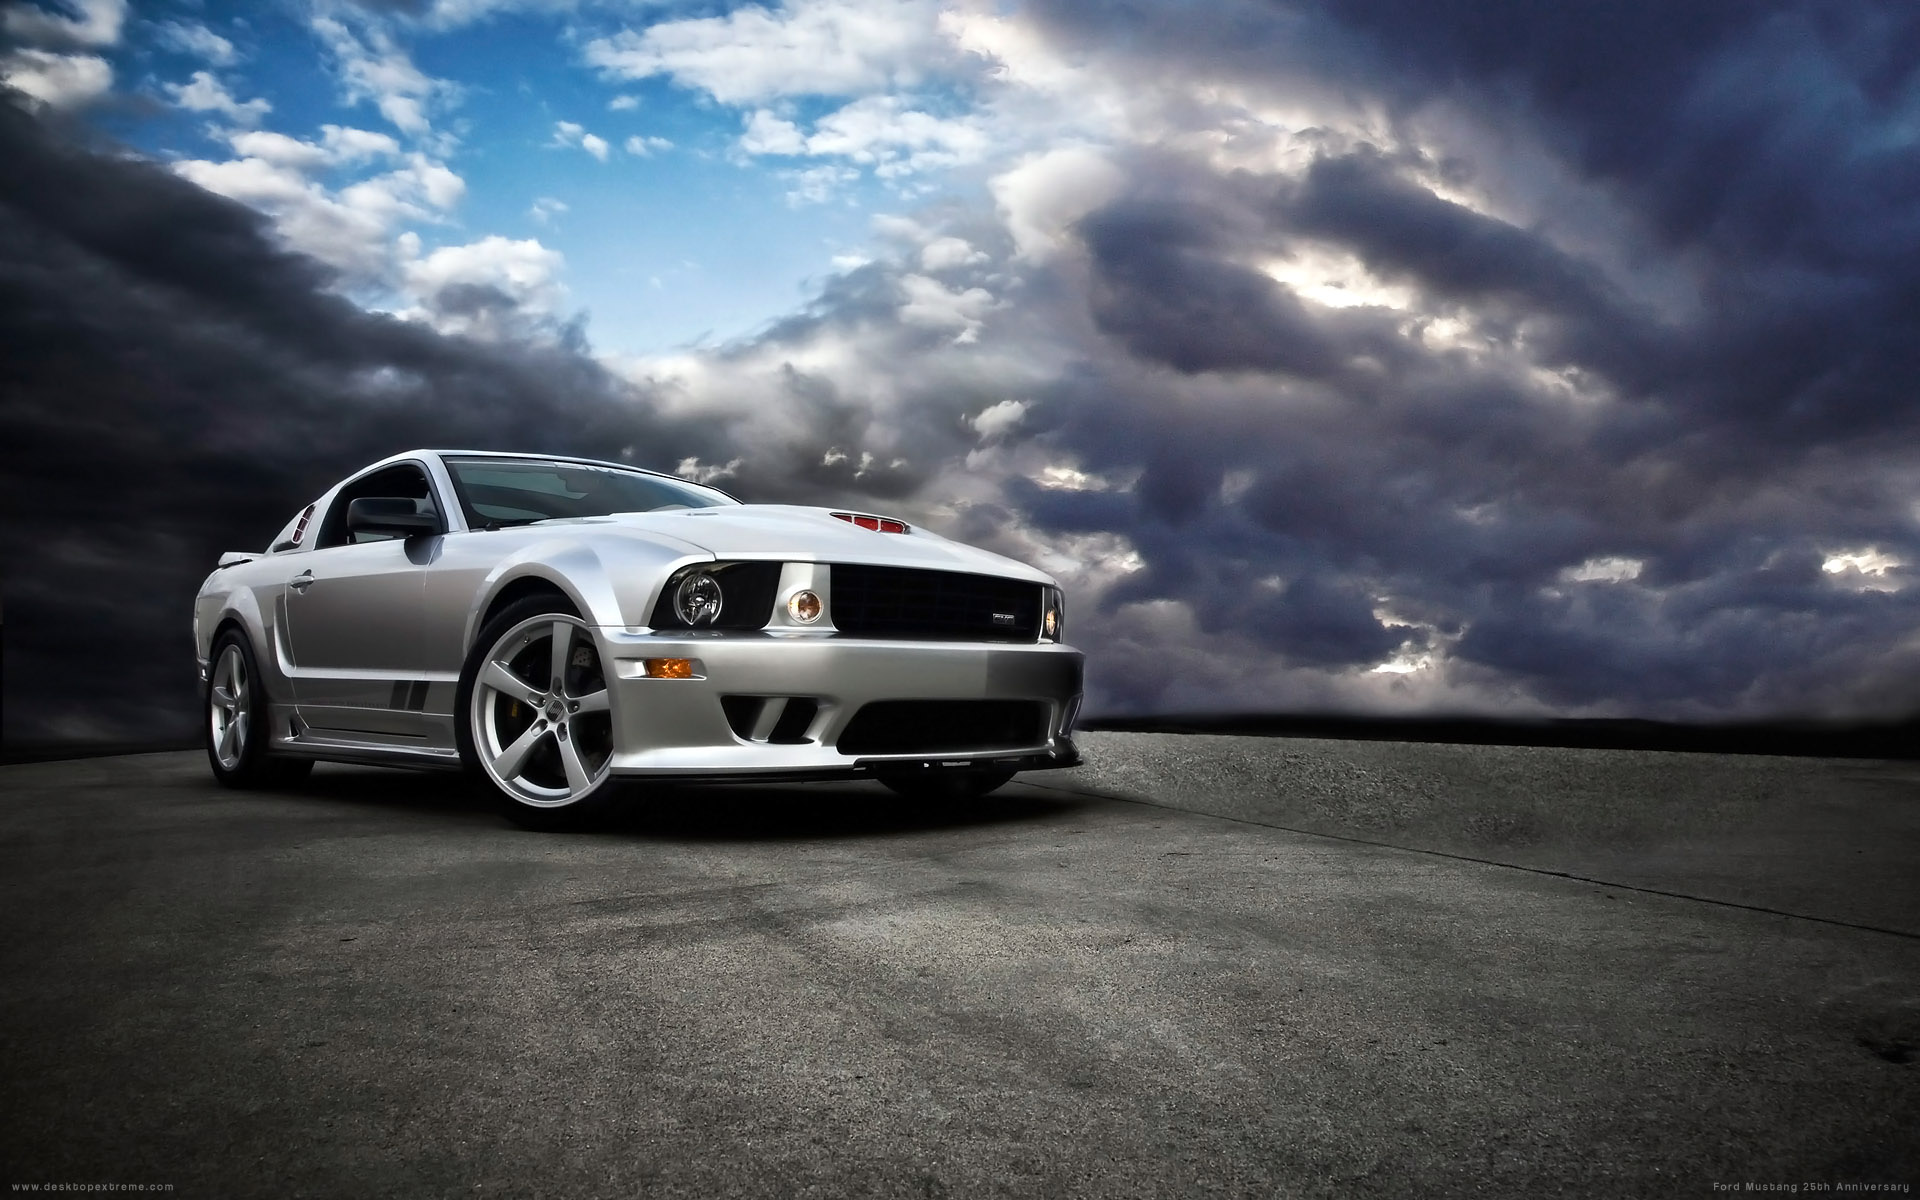 Ford Mustang Wallpapers Hd 5920 1920x1200